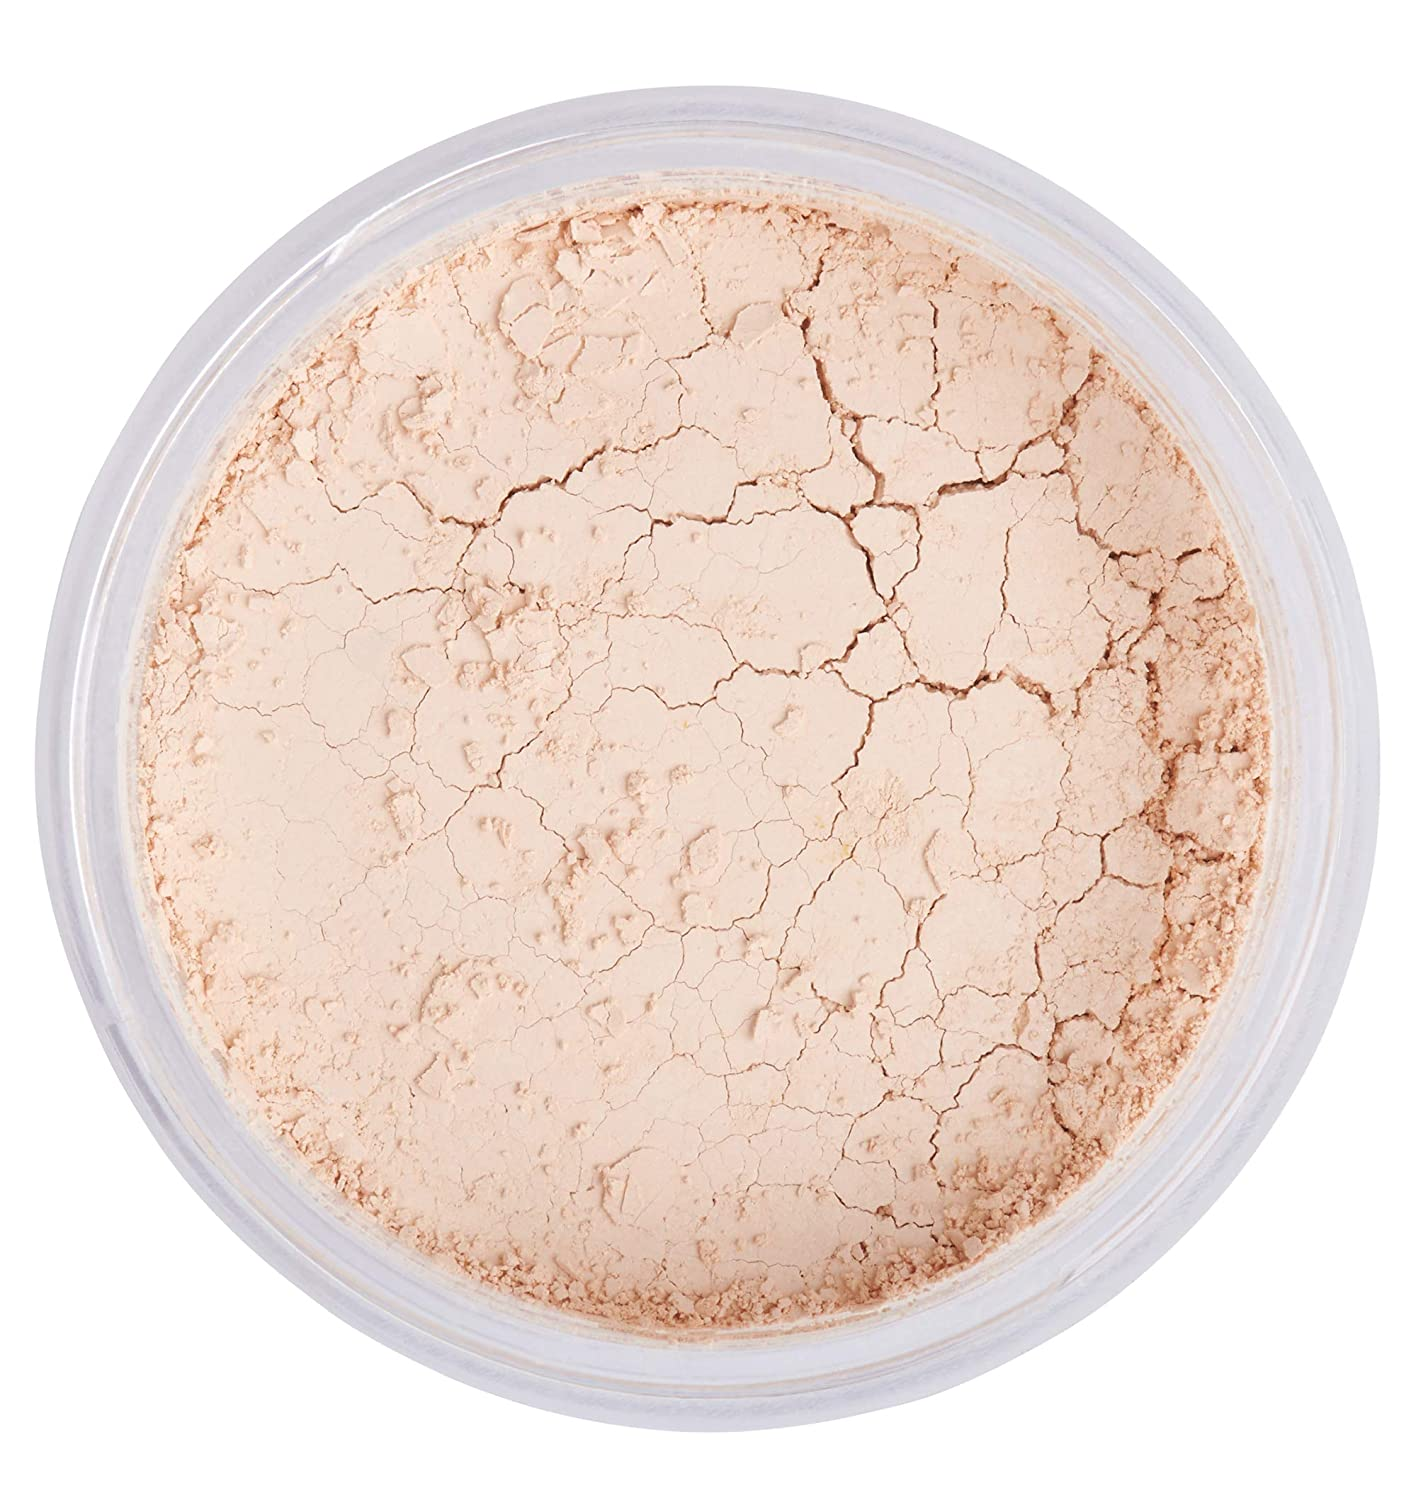 Amazon.com : Itay Loose Powder Foundation Travel Size Foundation - All Natural Mineral Makeup By Itay Mineral Cosmetics (MF14 - Afogatto) : Beauty